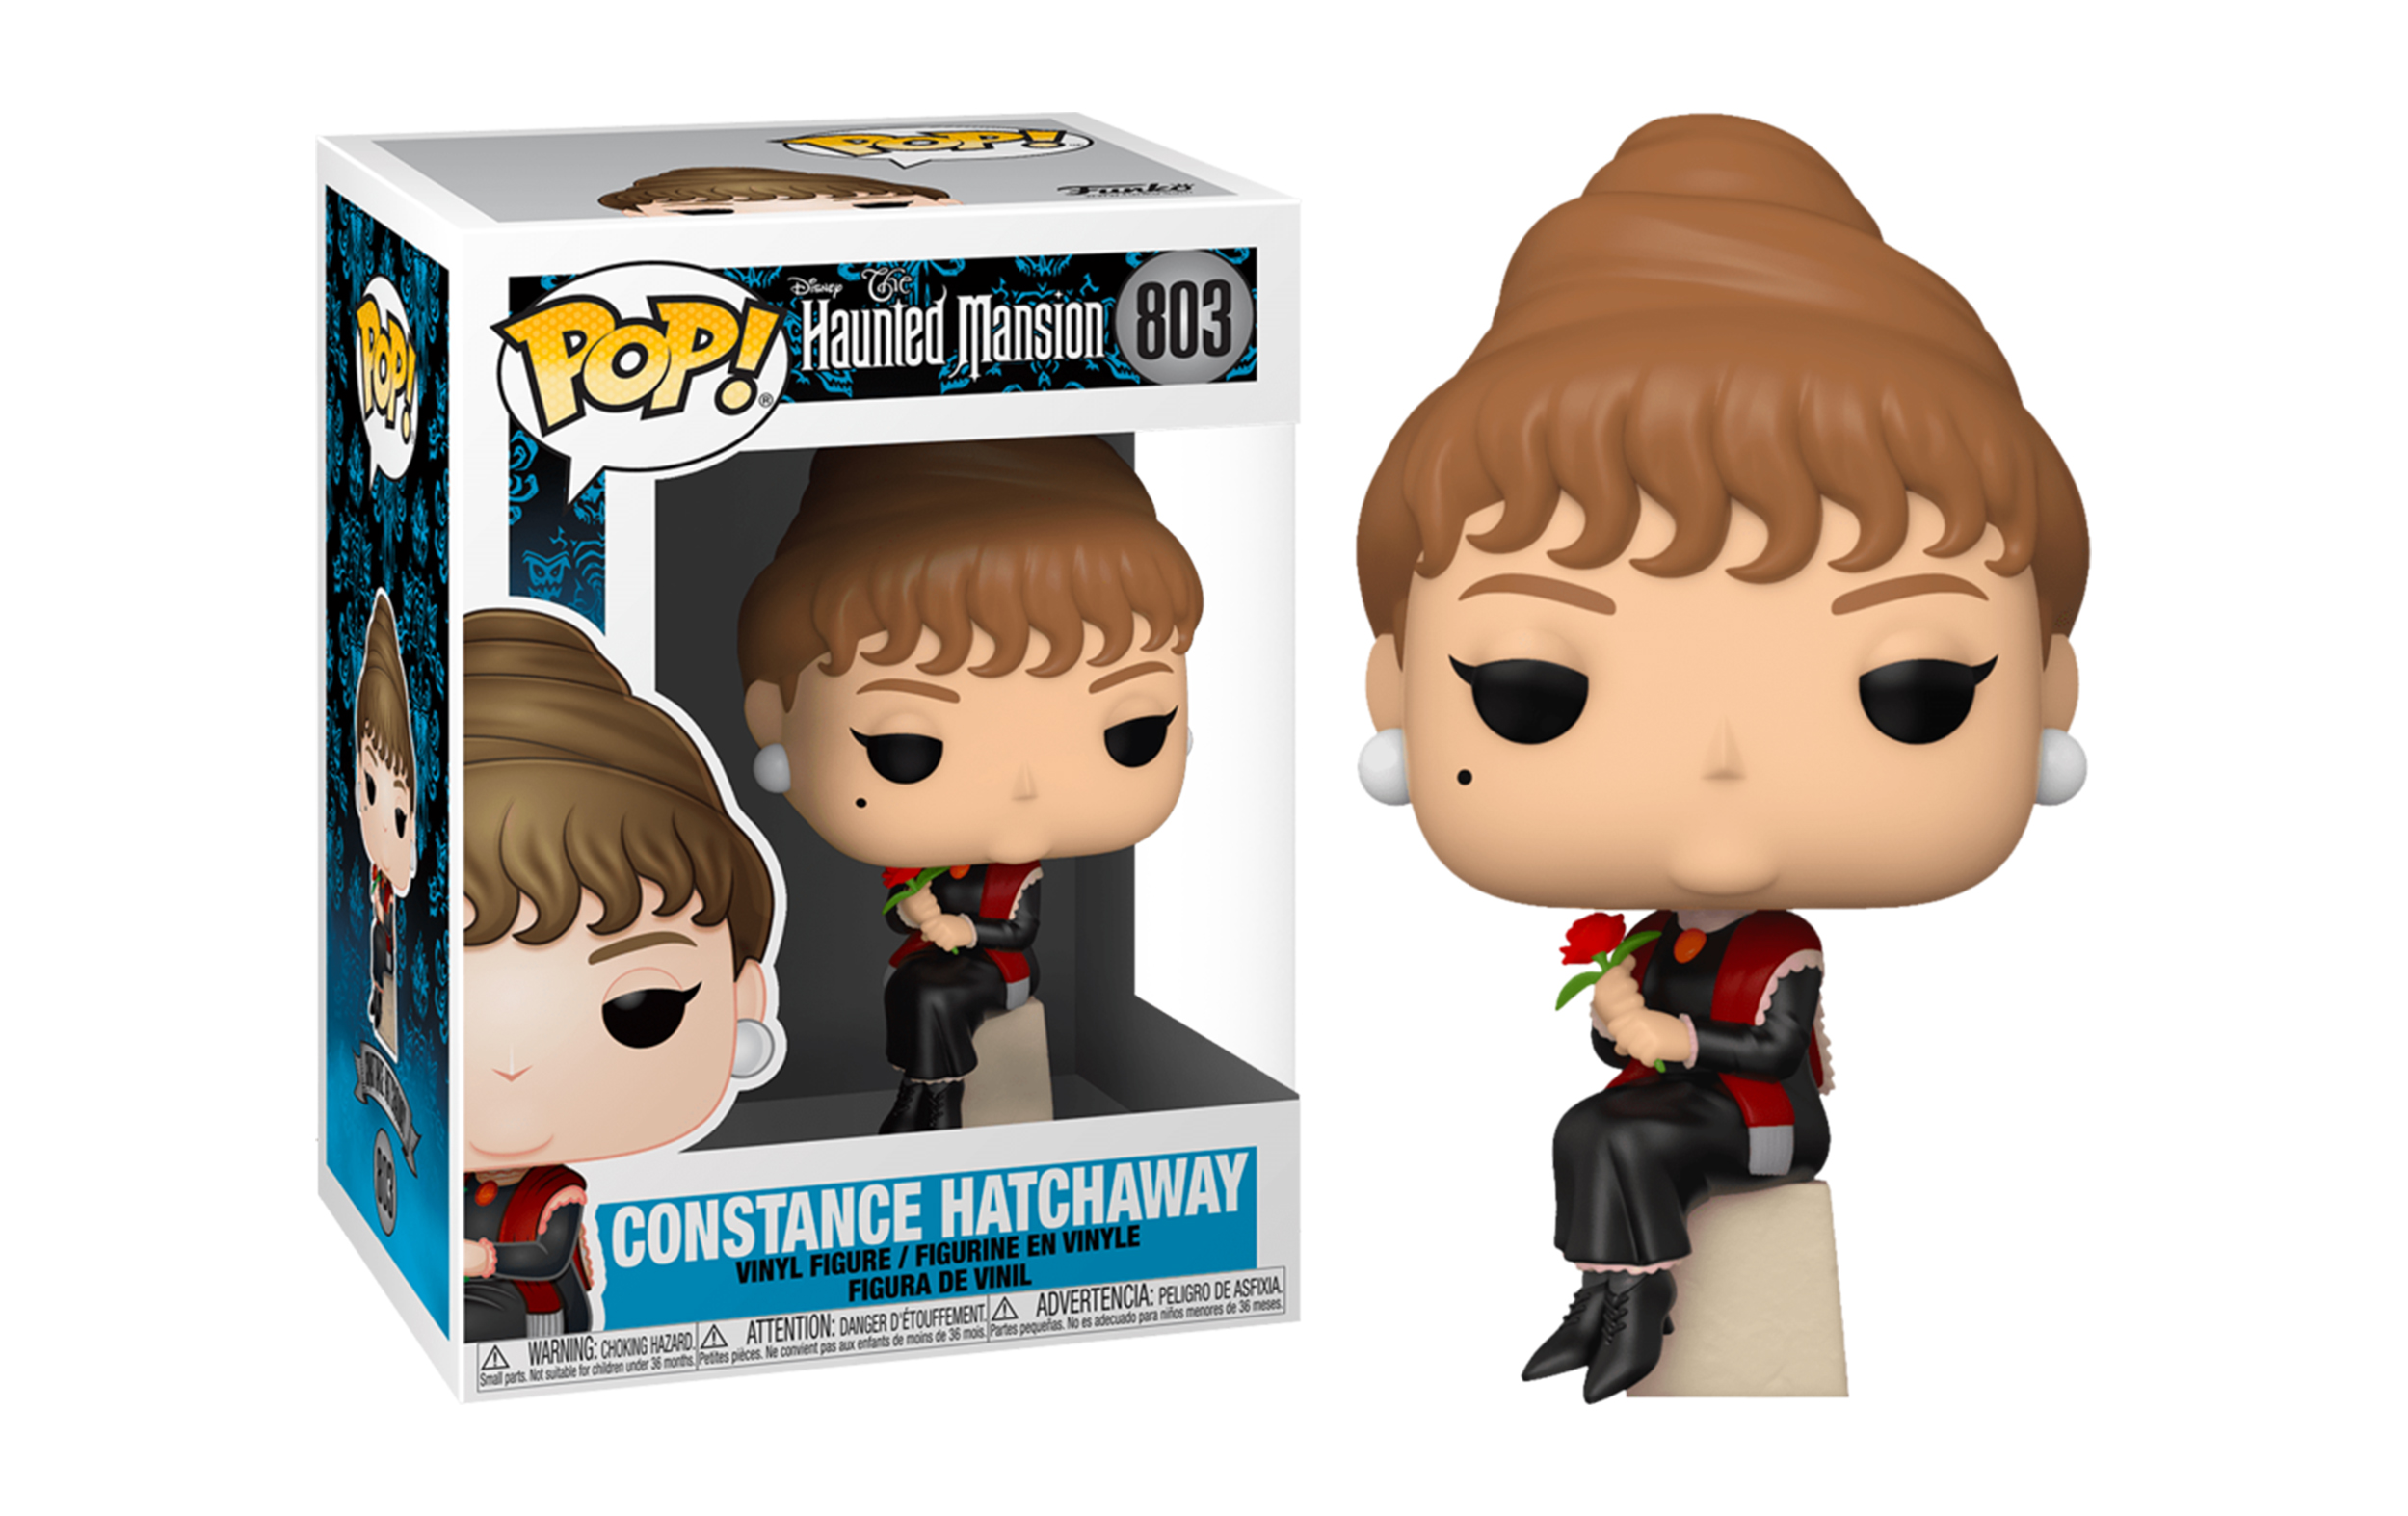 Disney The Haunted Mansion Constance Hatchaway 803 Funko POP Vinyl Figure